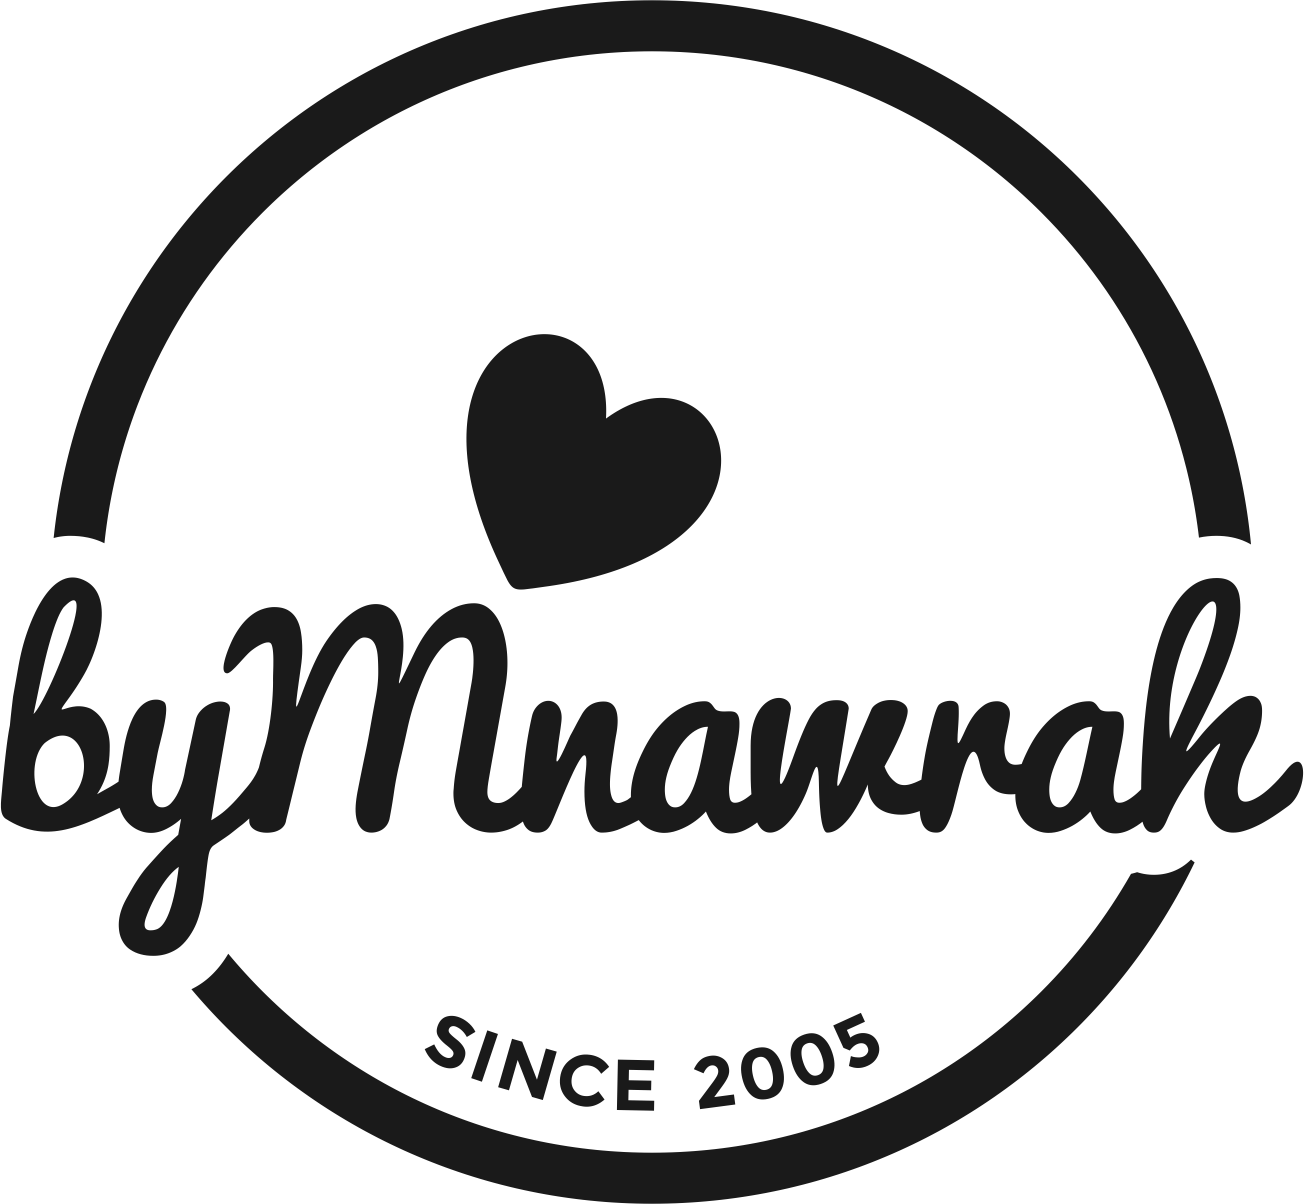 Update existing logo - step up a personal brand [Mnawrah] of an artist into a business [ByMnawrah]